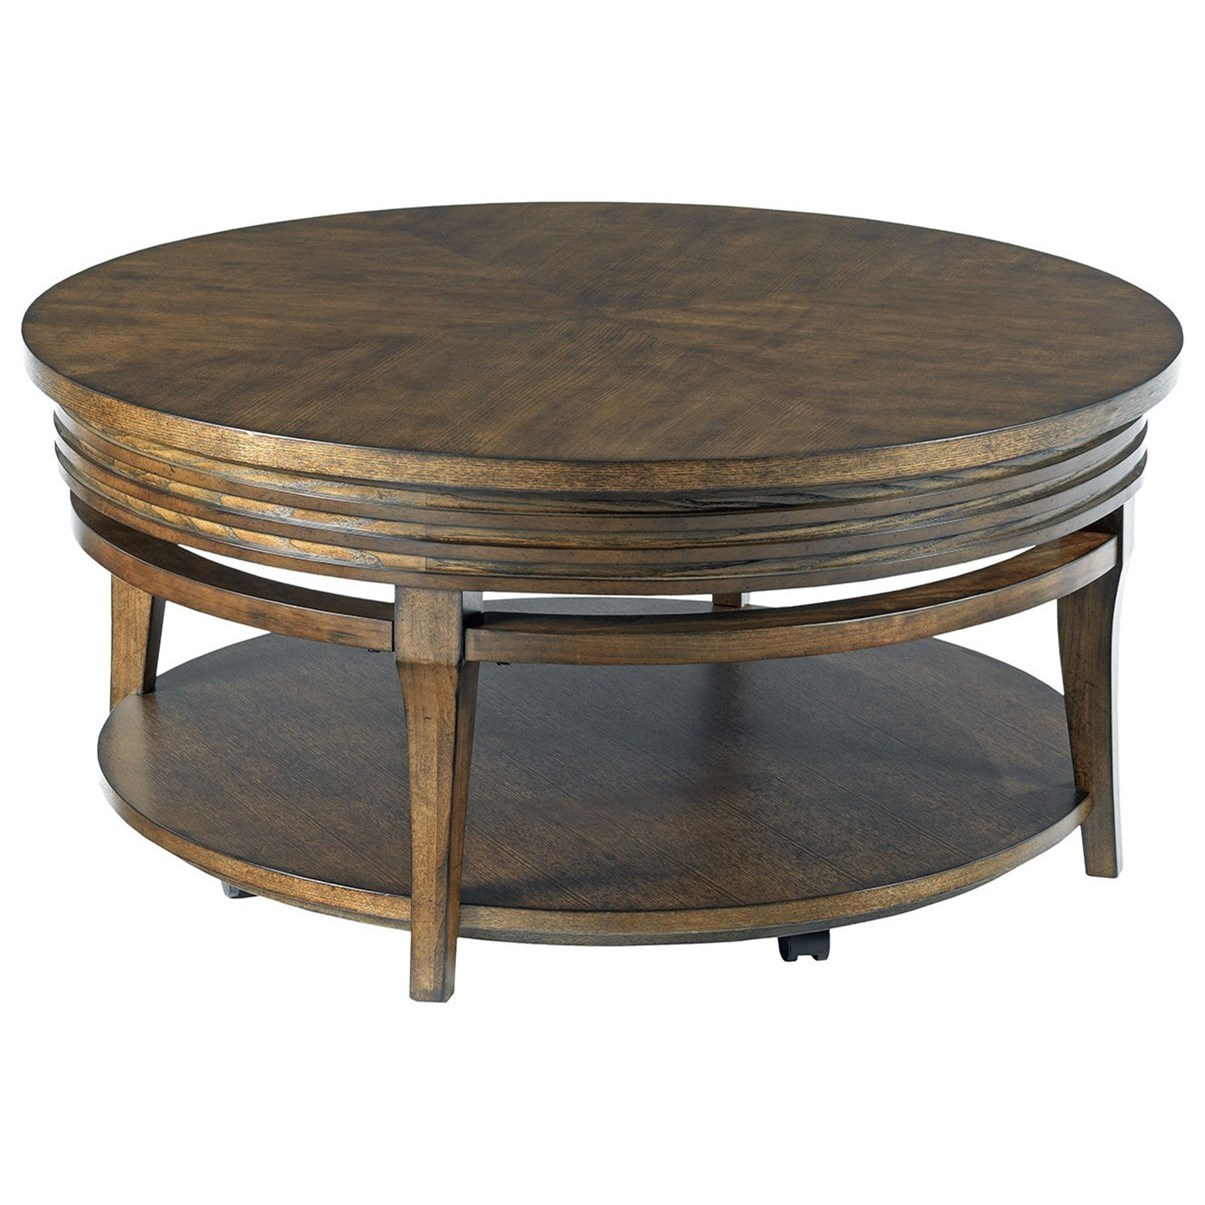 Hammary groovy round cocktail table with casters mueller for Cocktail table accessories